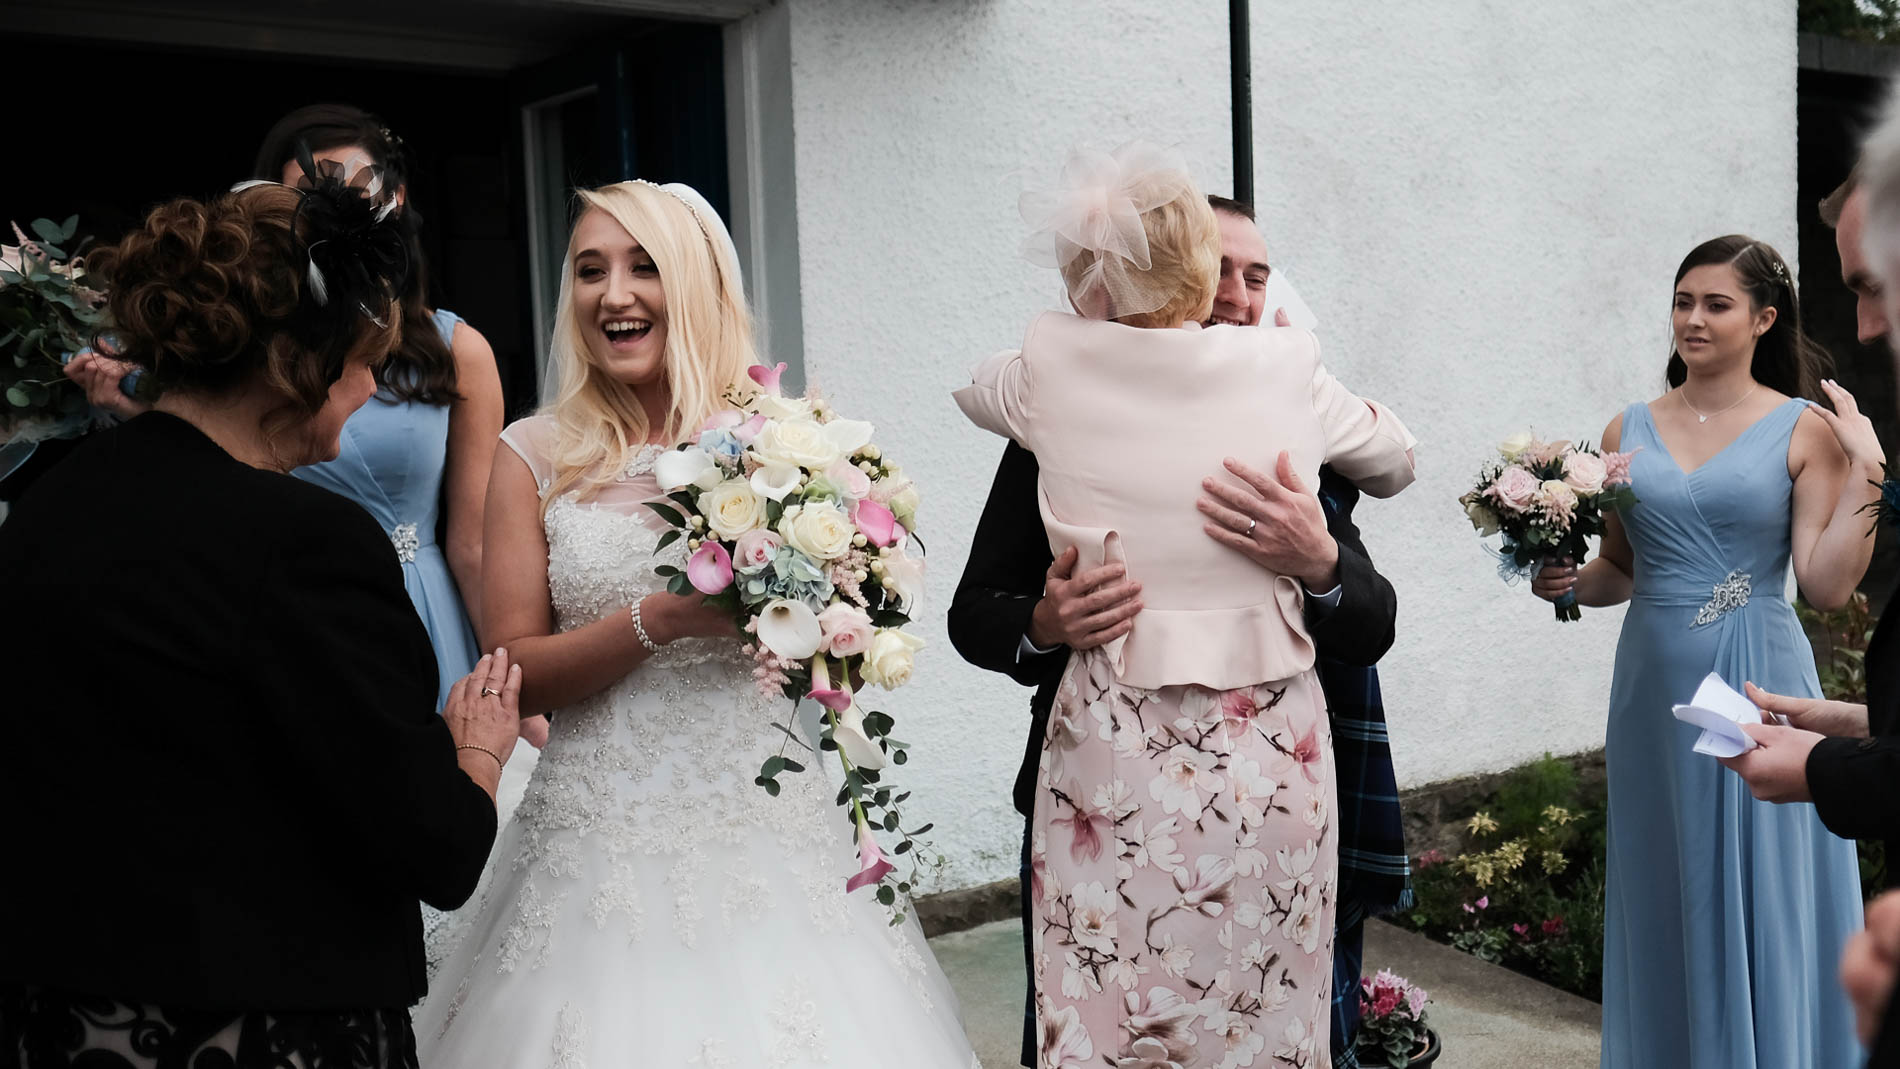 a colour photograph of a bride and groom being congratulated by their families outside a church